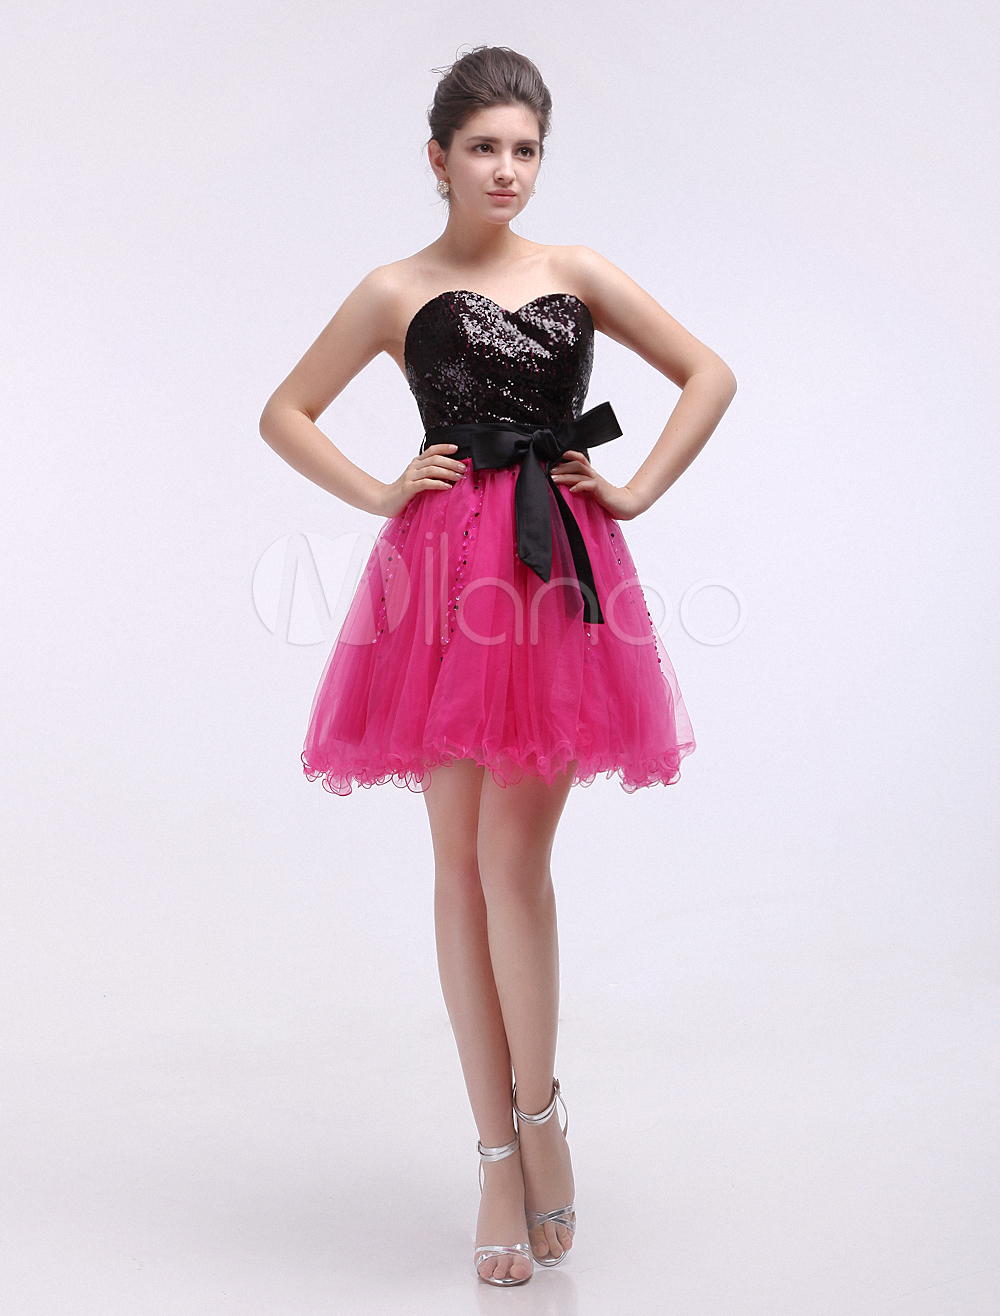 Buy Tulle Cocktail Dress Sequin Sweetheart Prom Dress Hot Pink Strapless Sleeveless A Line Short Party Dress With Bow Sash for $119.99 in Milanoo store